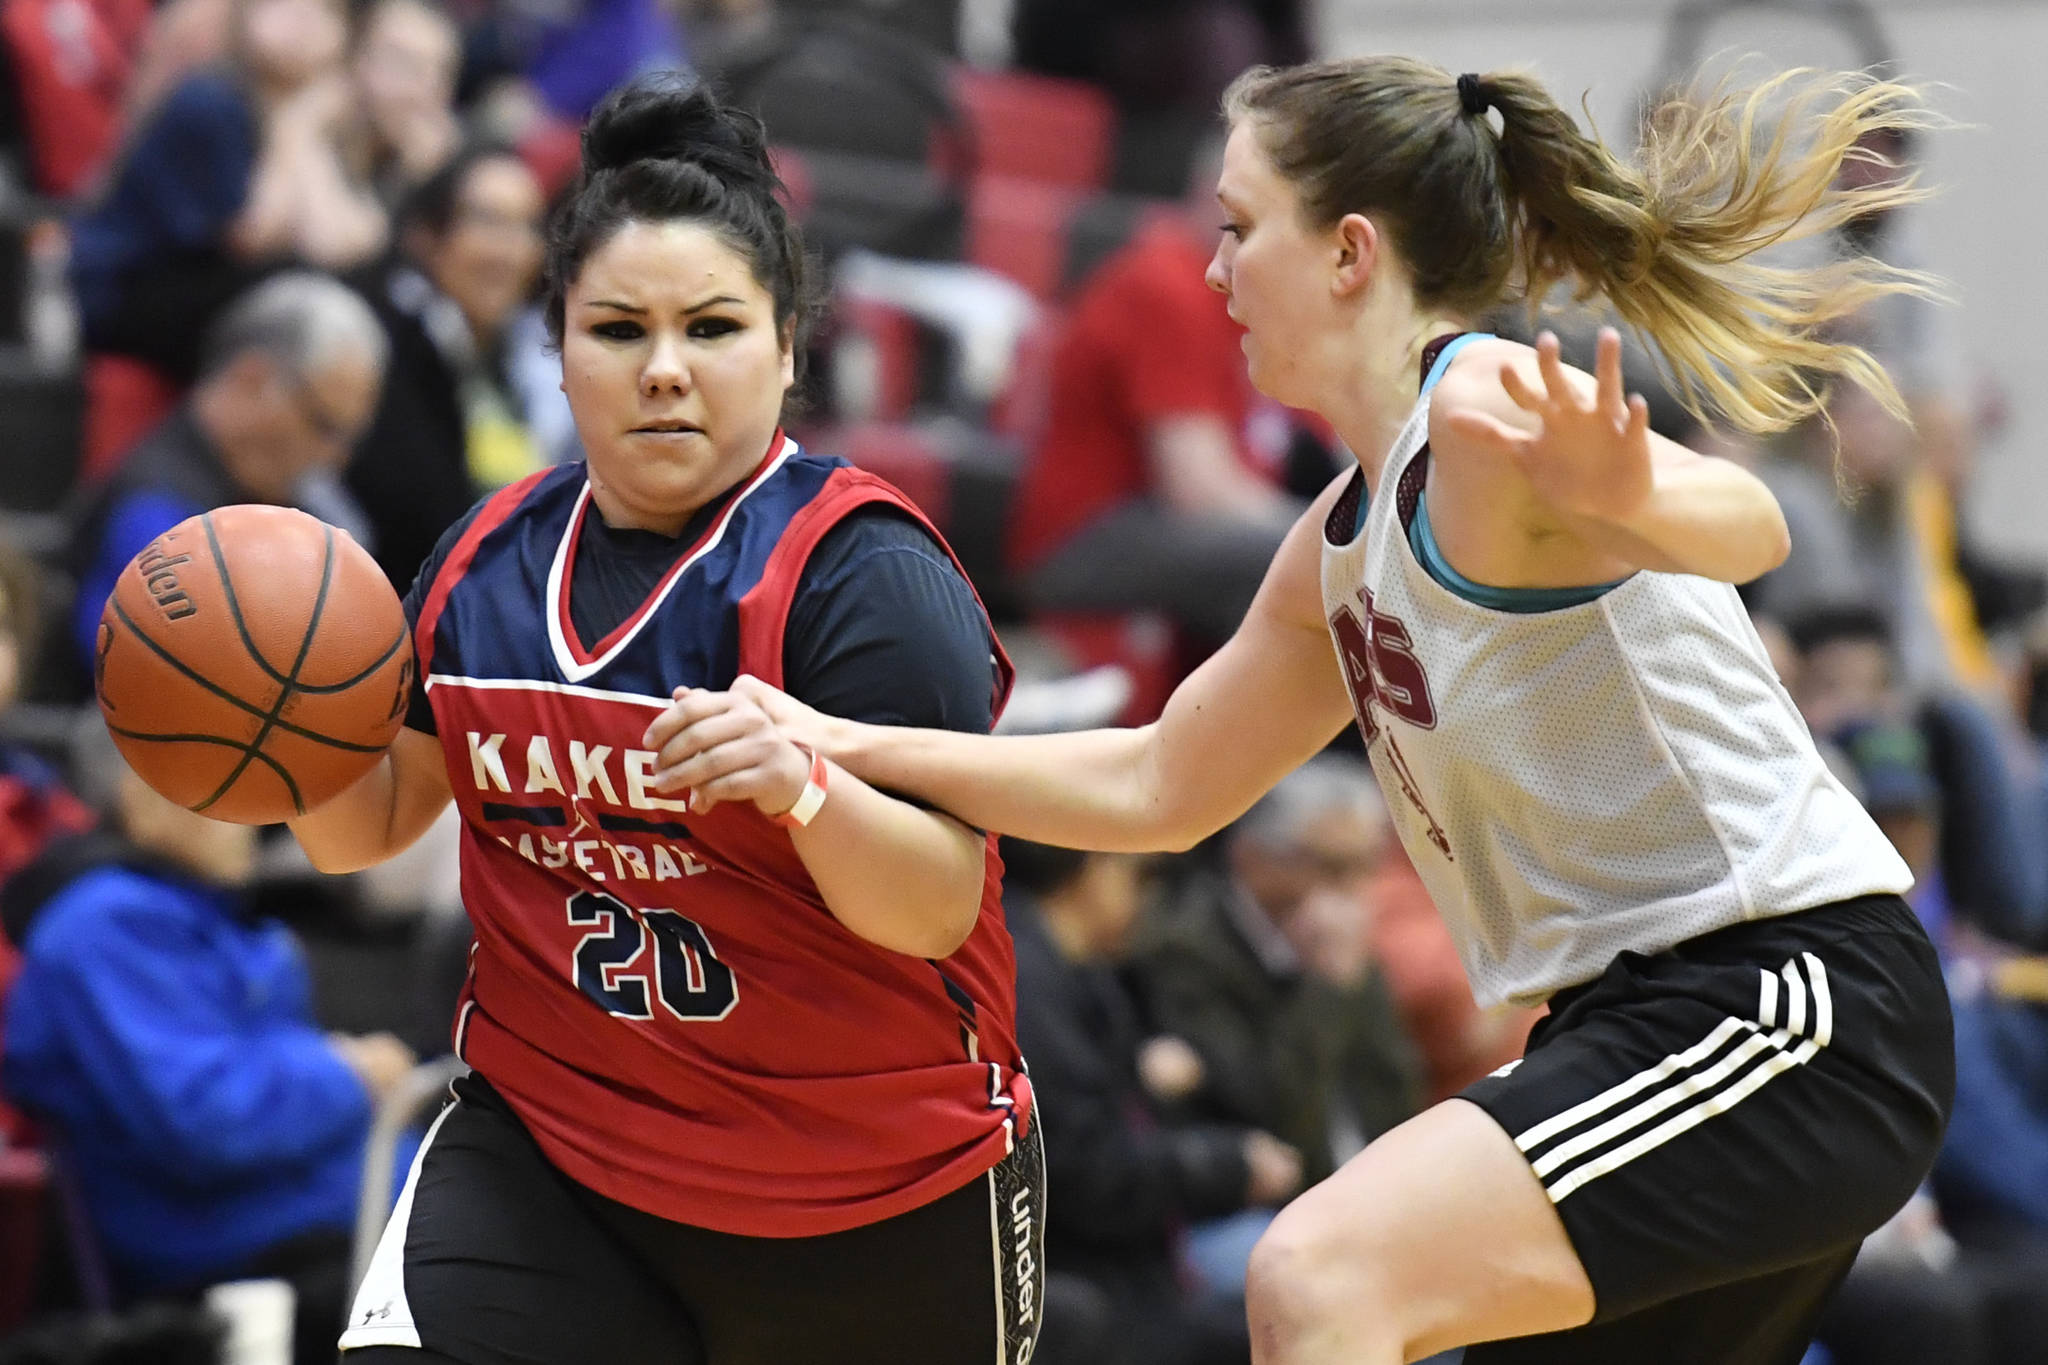 Kake's Monica Ashenfelter, left, drives against Haines' Rachel Brittenham at the Juneau Lions Club 73rd Annual Gold Medal Basketball Tournament at Juneau-Douglas High School: Yadaa.at Kalé on Wednesday, March 20, 2019. Haines won 67-20. (Michael Penn | Juneau Empire)